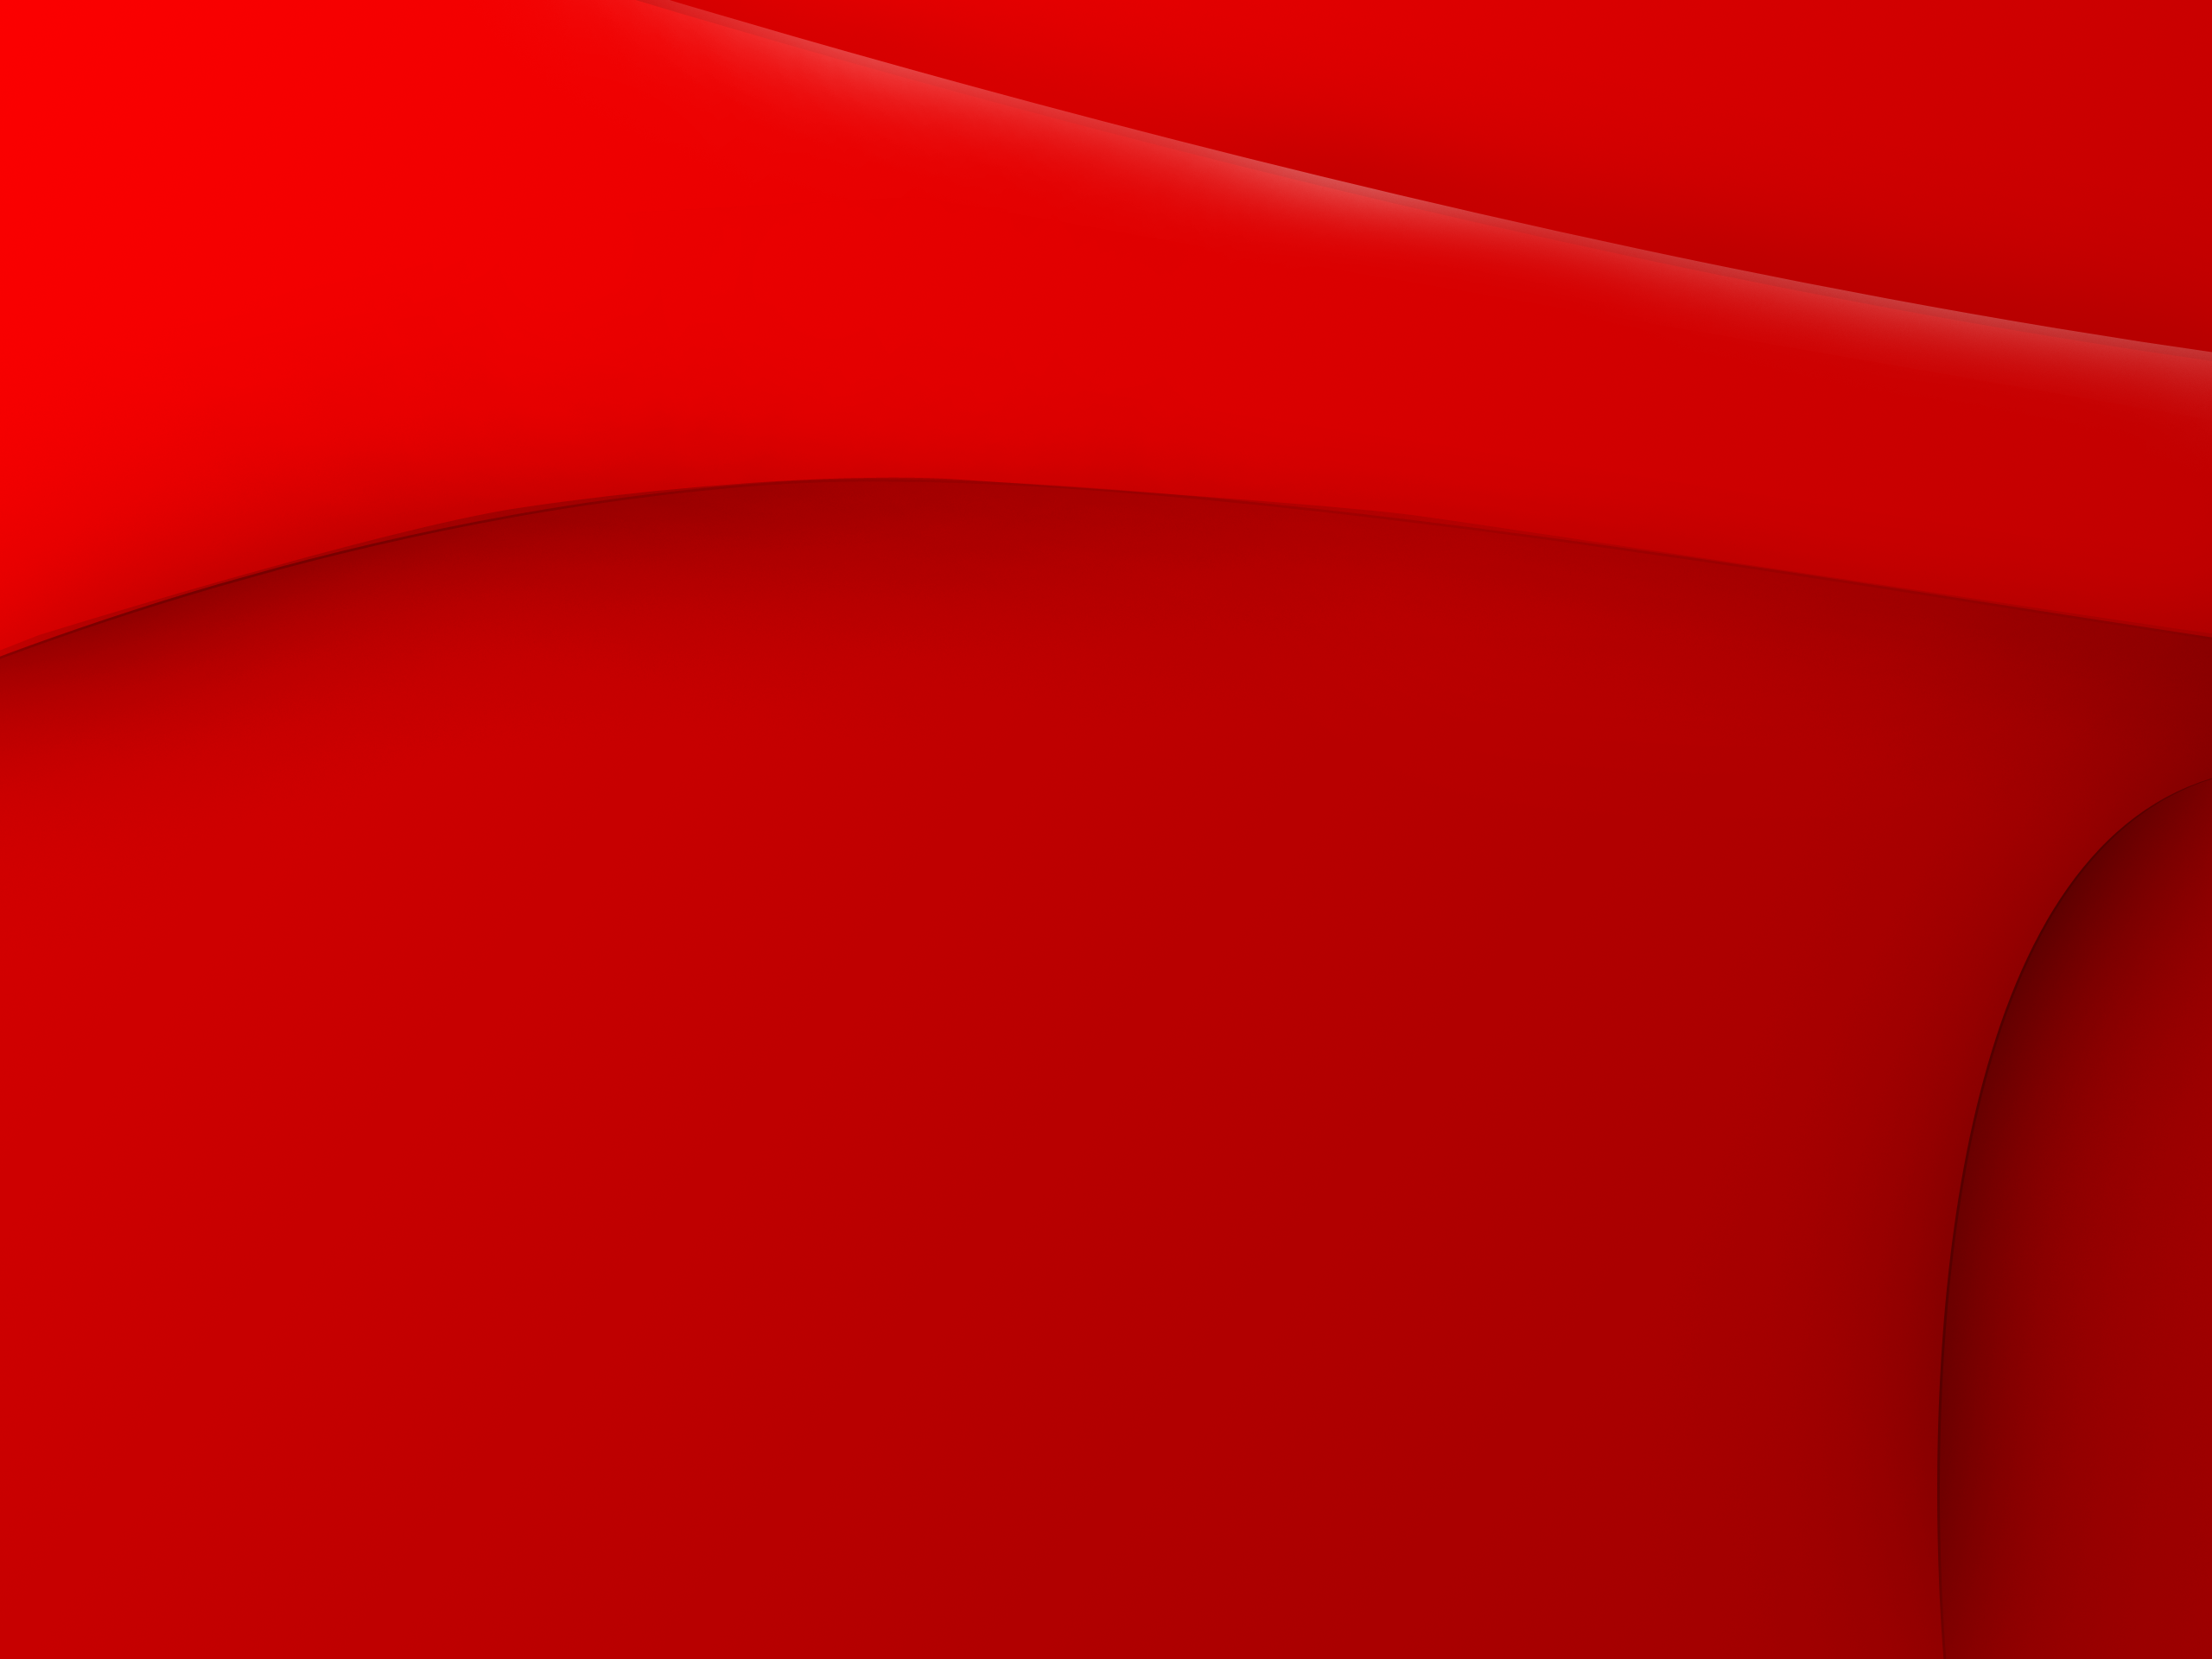 Simple Design Red Abstract Wallpaper HD Widescreen For Your PC ...